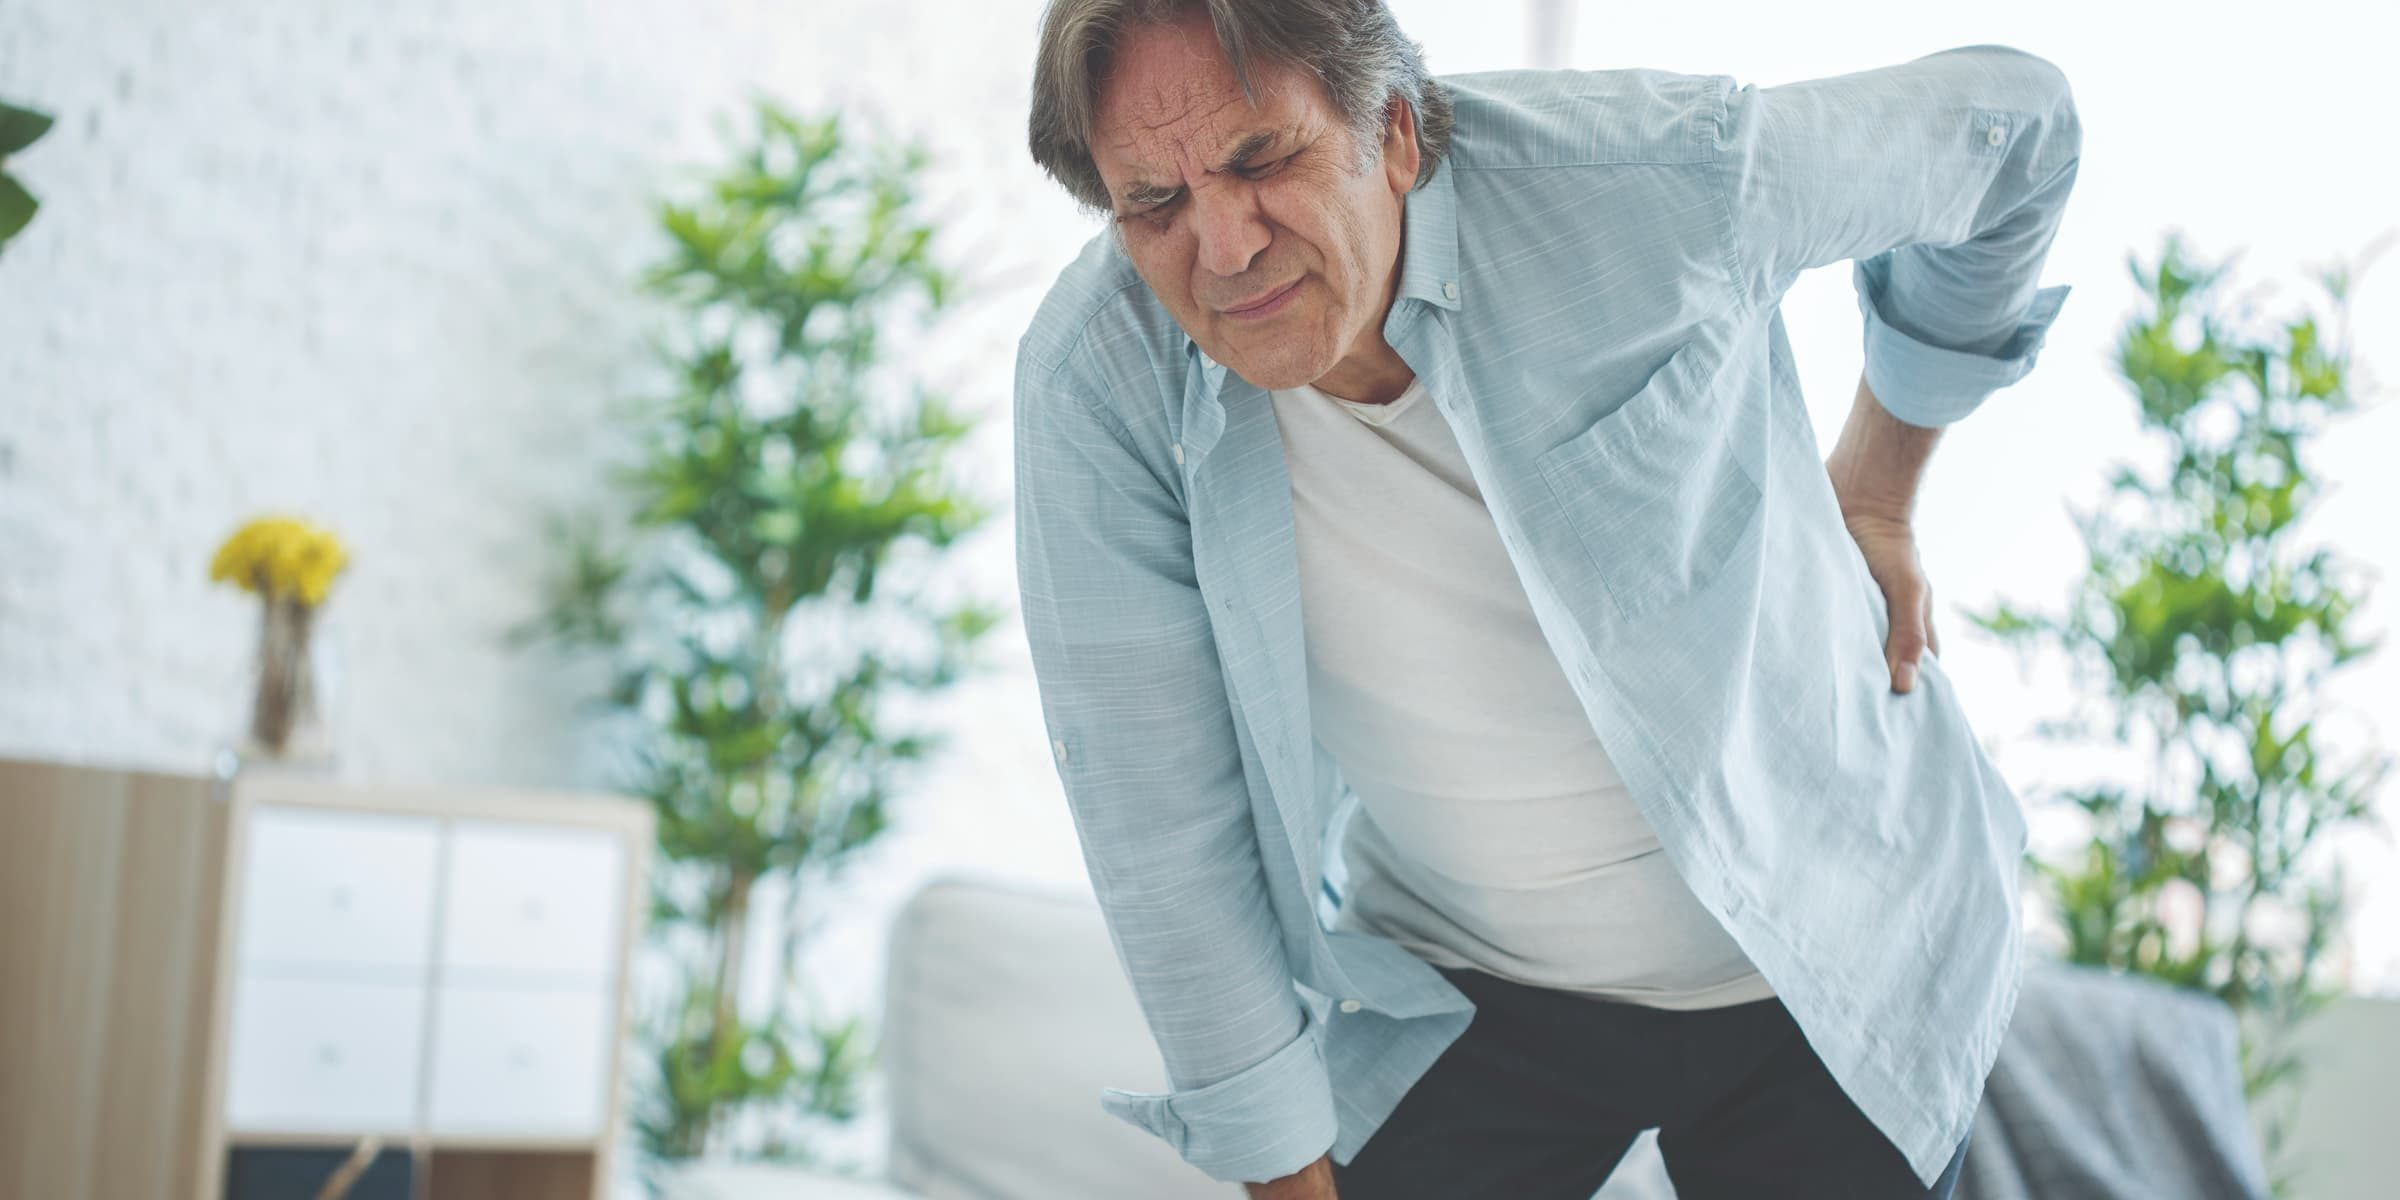 senior white man bent over in pain because of back pain with grimace on face